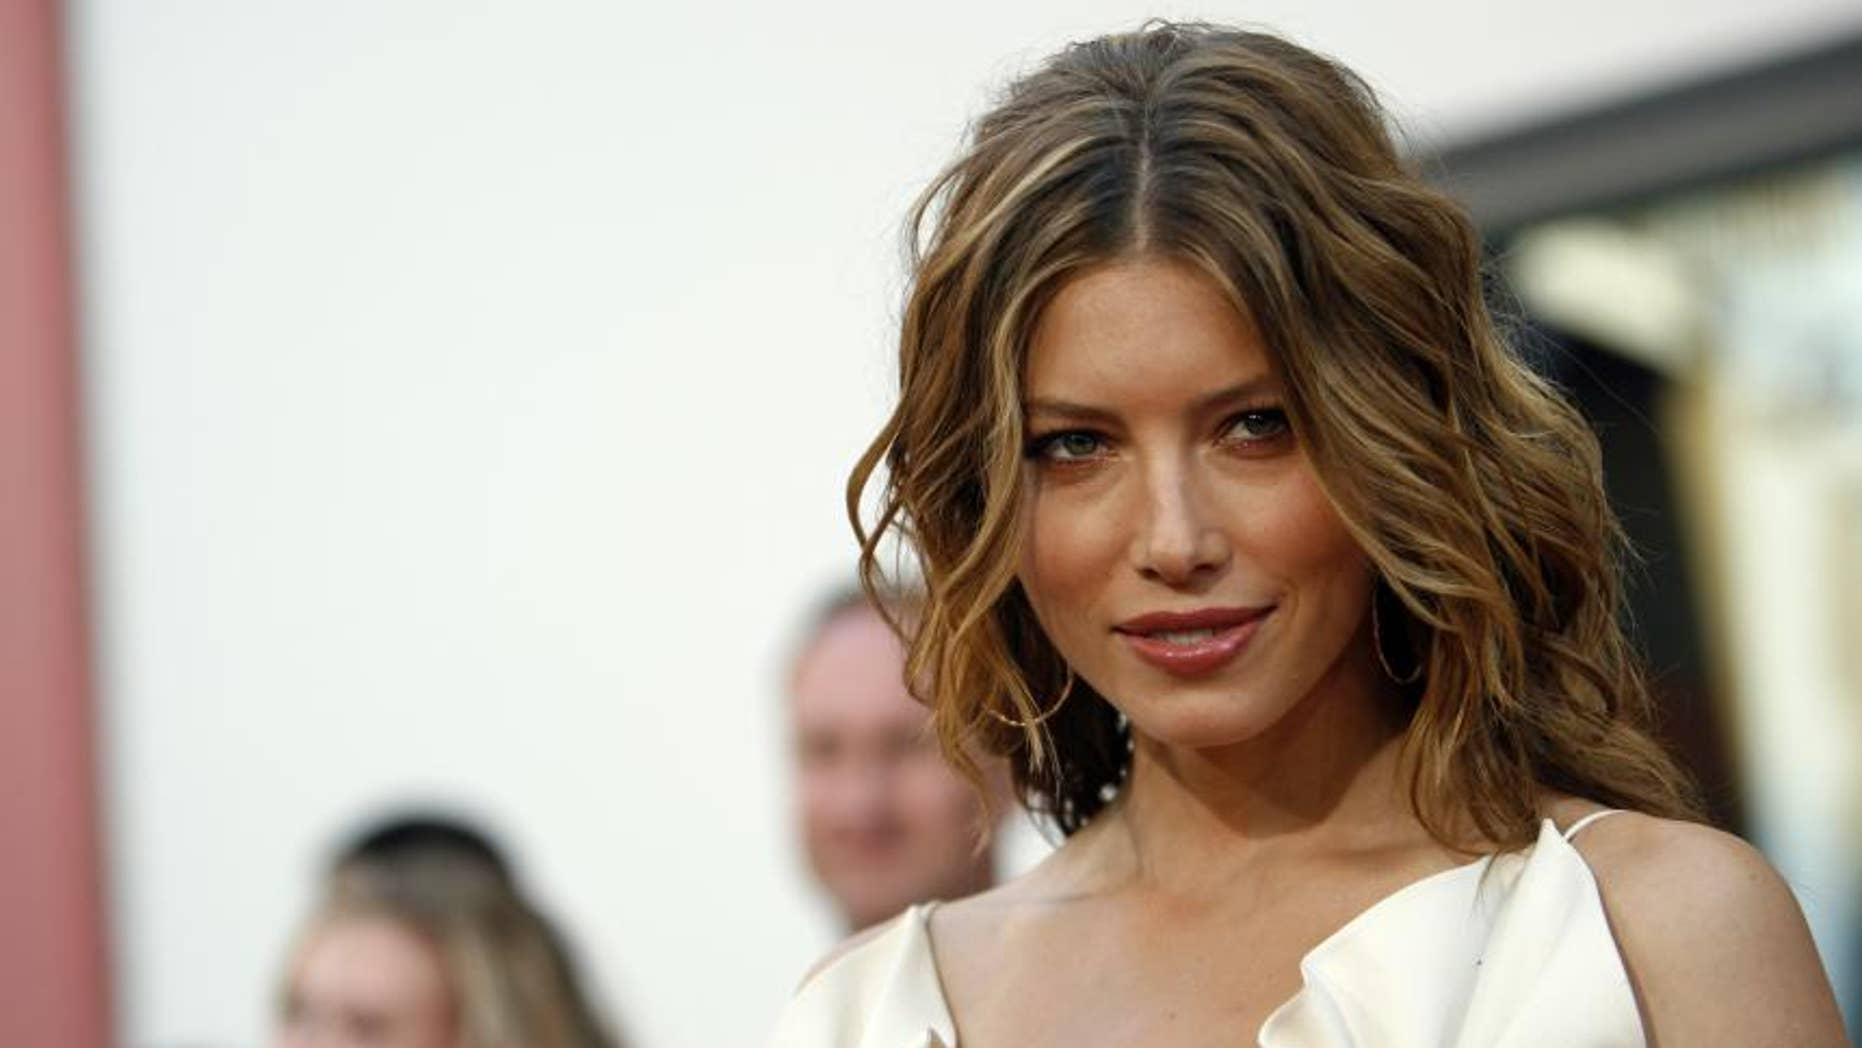 """Hubby Justin Timberlake isn't the only one to bring sexy back. Actress Jessica Biel was feature in the 2009 movie """"Powder Blue"""" as a stripper attempting to earn money for her terminally ill son. While the film went straight to DVD, Biel later said she would go naked again for the right project."""